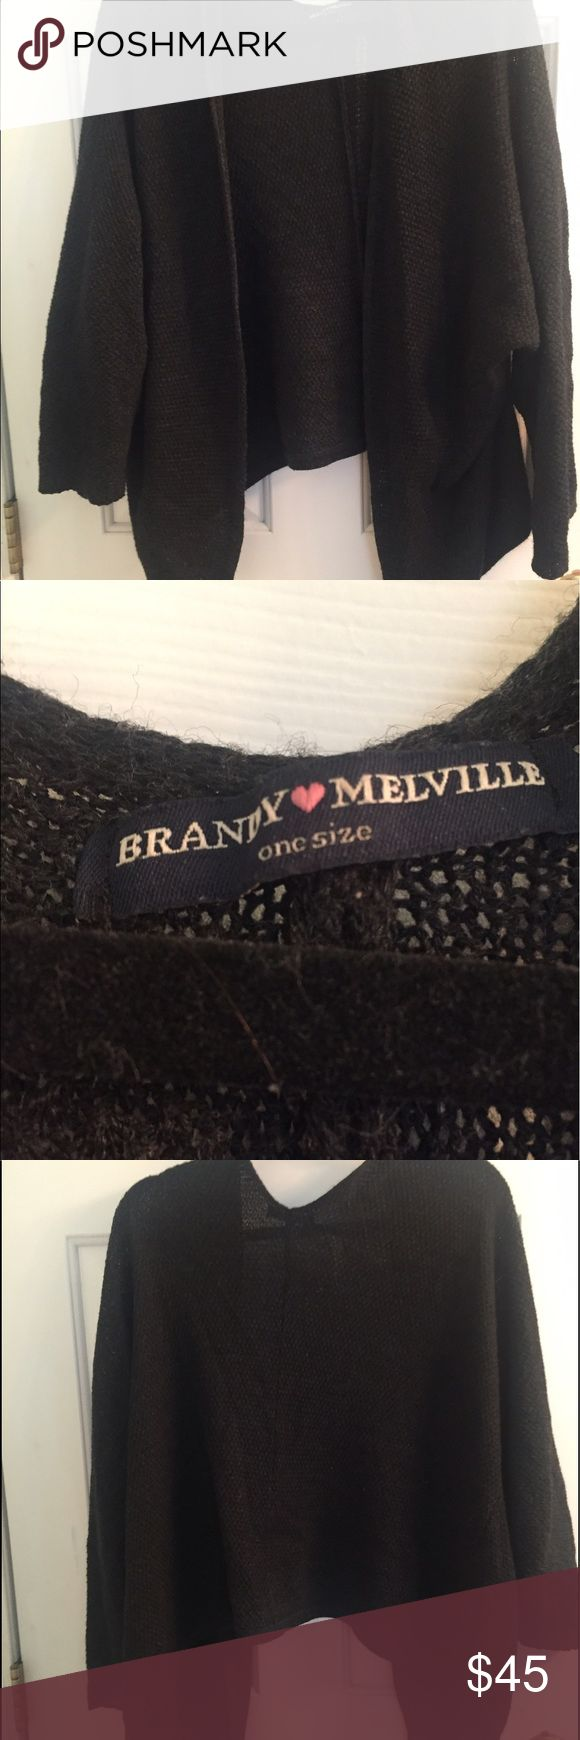 Brandy Melville Cardigan Great condition Brandy black cardigan. One size fits all! A wardrobe must have! Brandy Melville Sweaters Cardigans